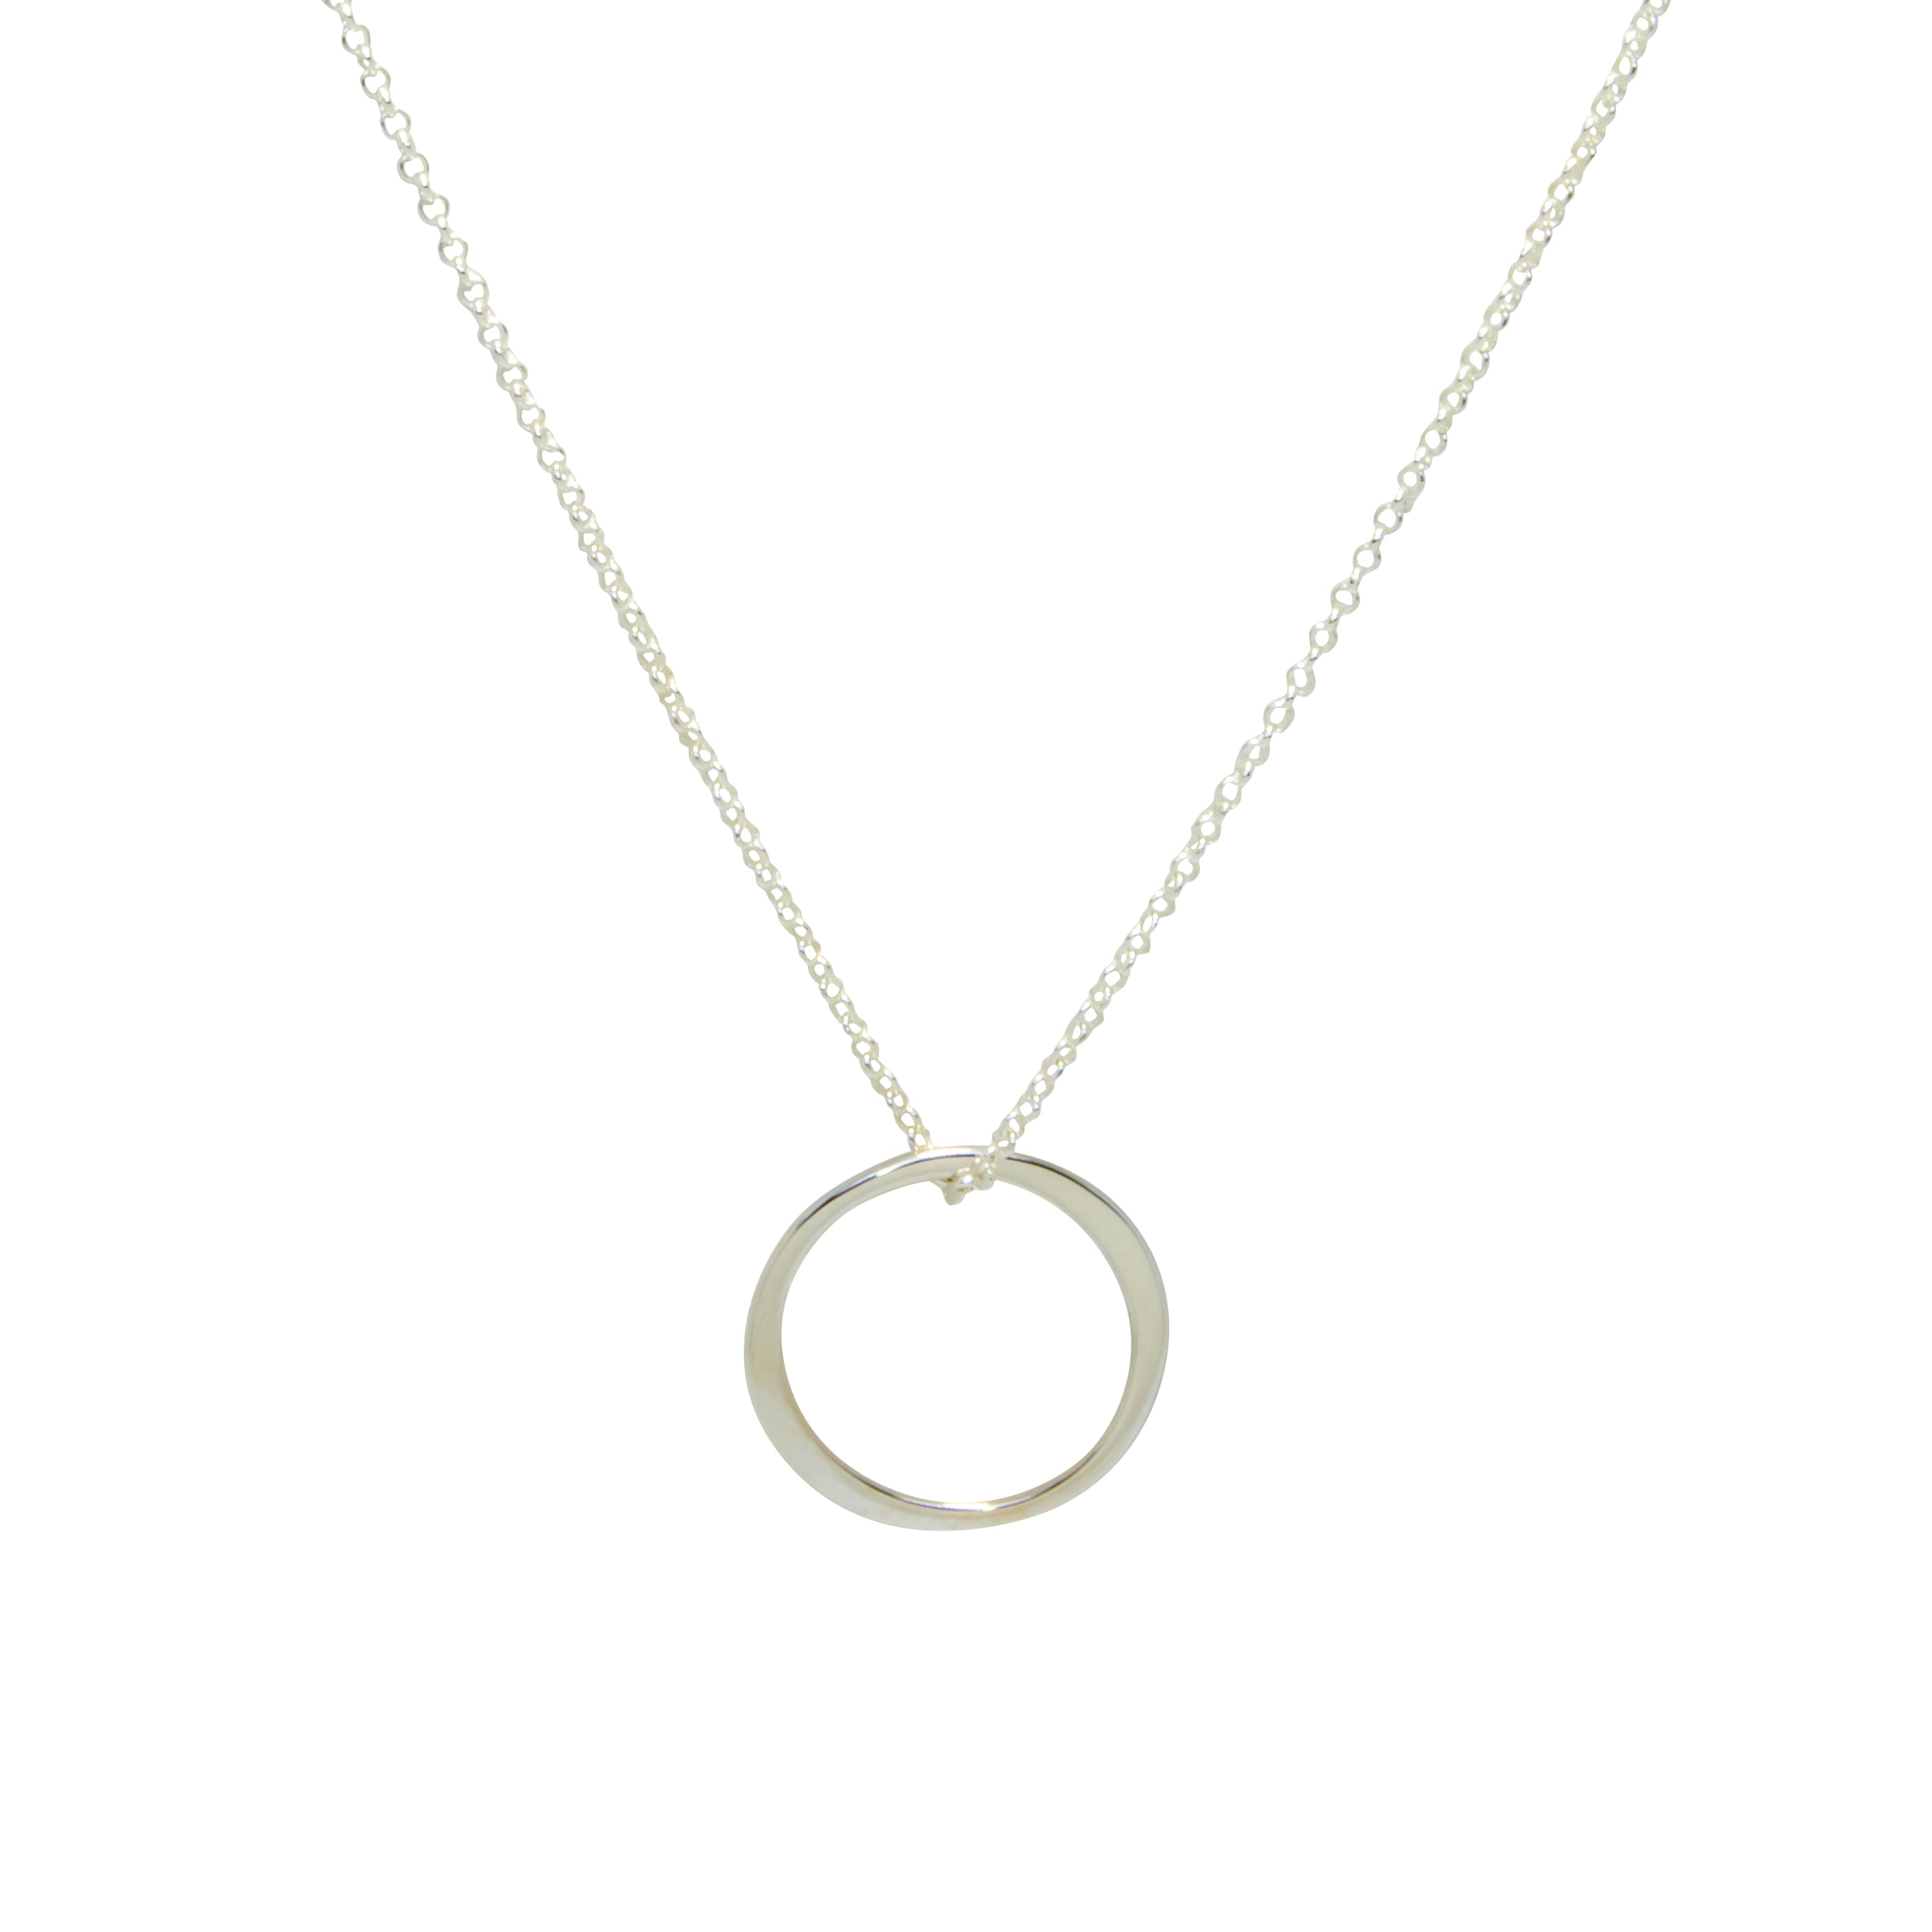 Inner Circle Necklace - Sterling Silver